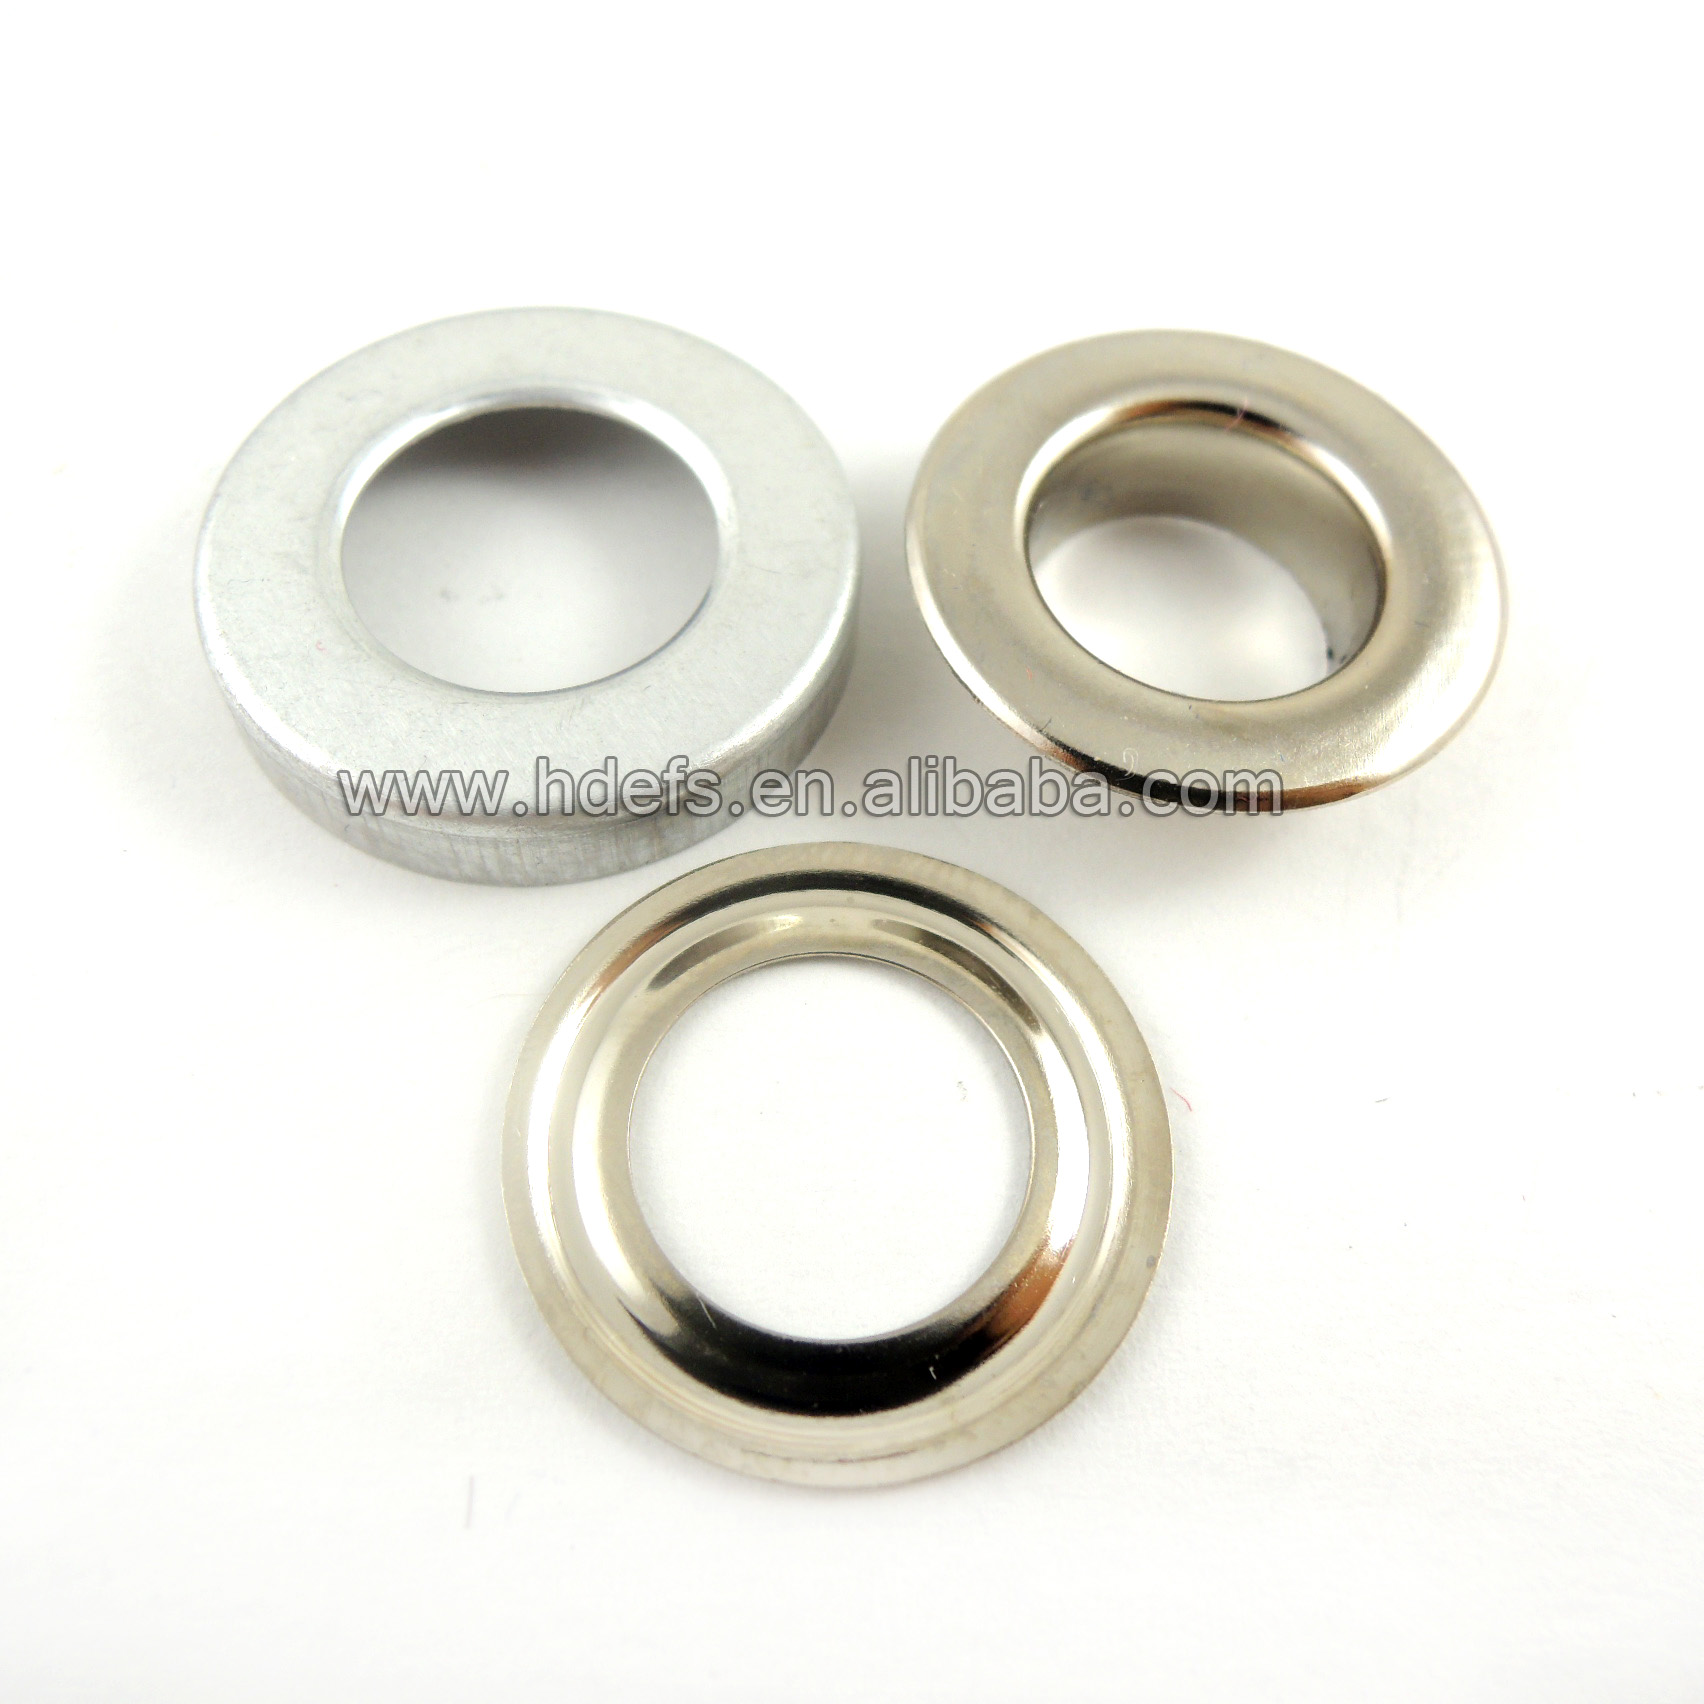 24mm DIY eyelet Fabirc covered eyelet/grommet